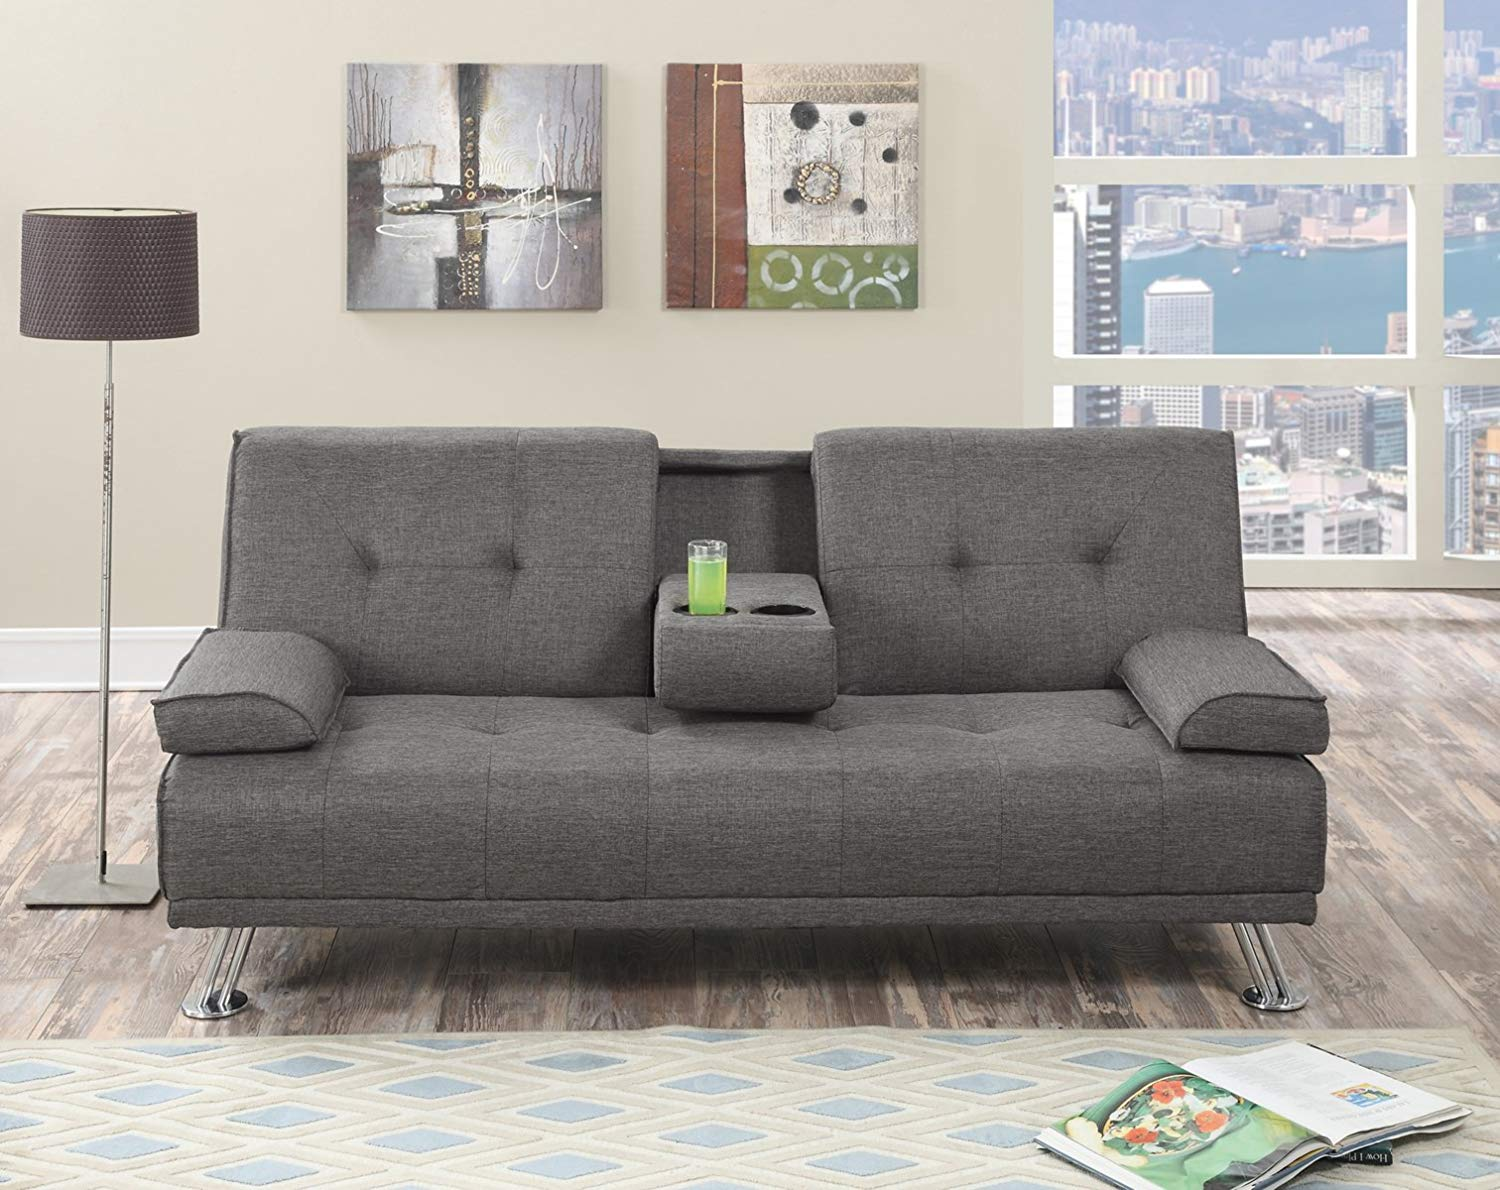 Cheap Retro Sofa For Sale, find Retro Sofa For Sale deals on line at ...